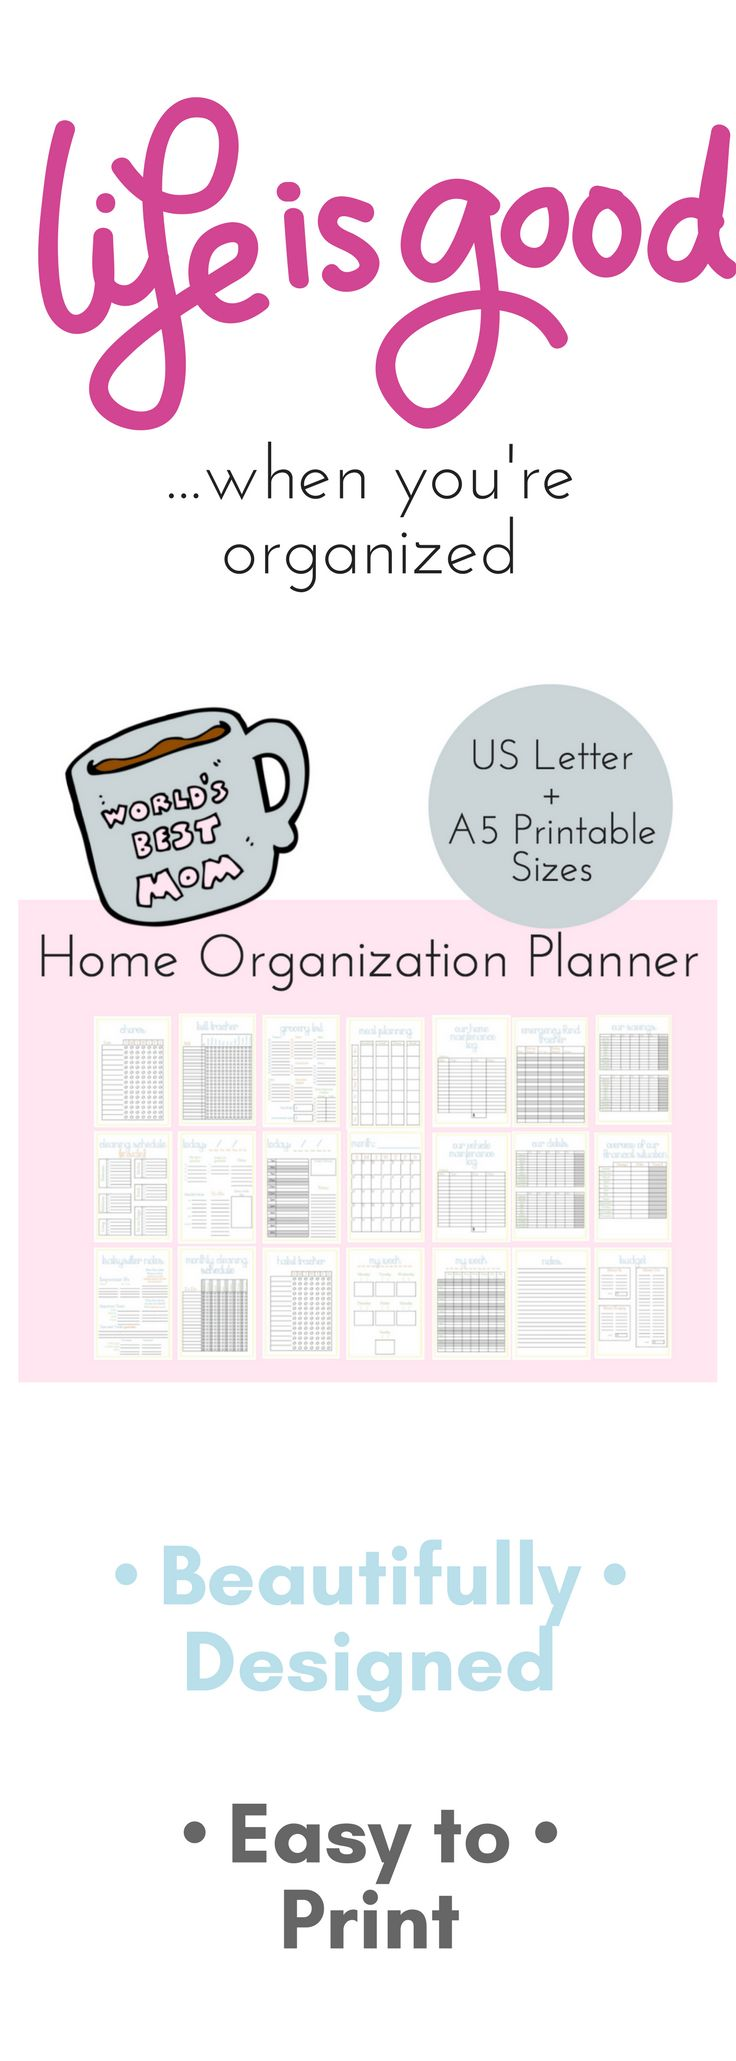 This mom planner is a great tool to get your home management under control. There's just something special about putting pen to paper and your home organization is closer than you think. Whether you use these printables to create a complete household binder or just print the pages you need for that day or week. This is THE step in the clear-the-chaos direction.